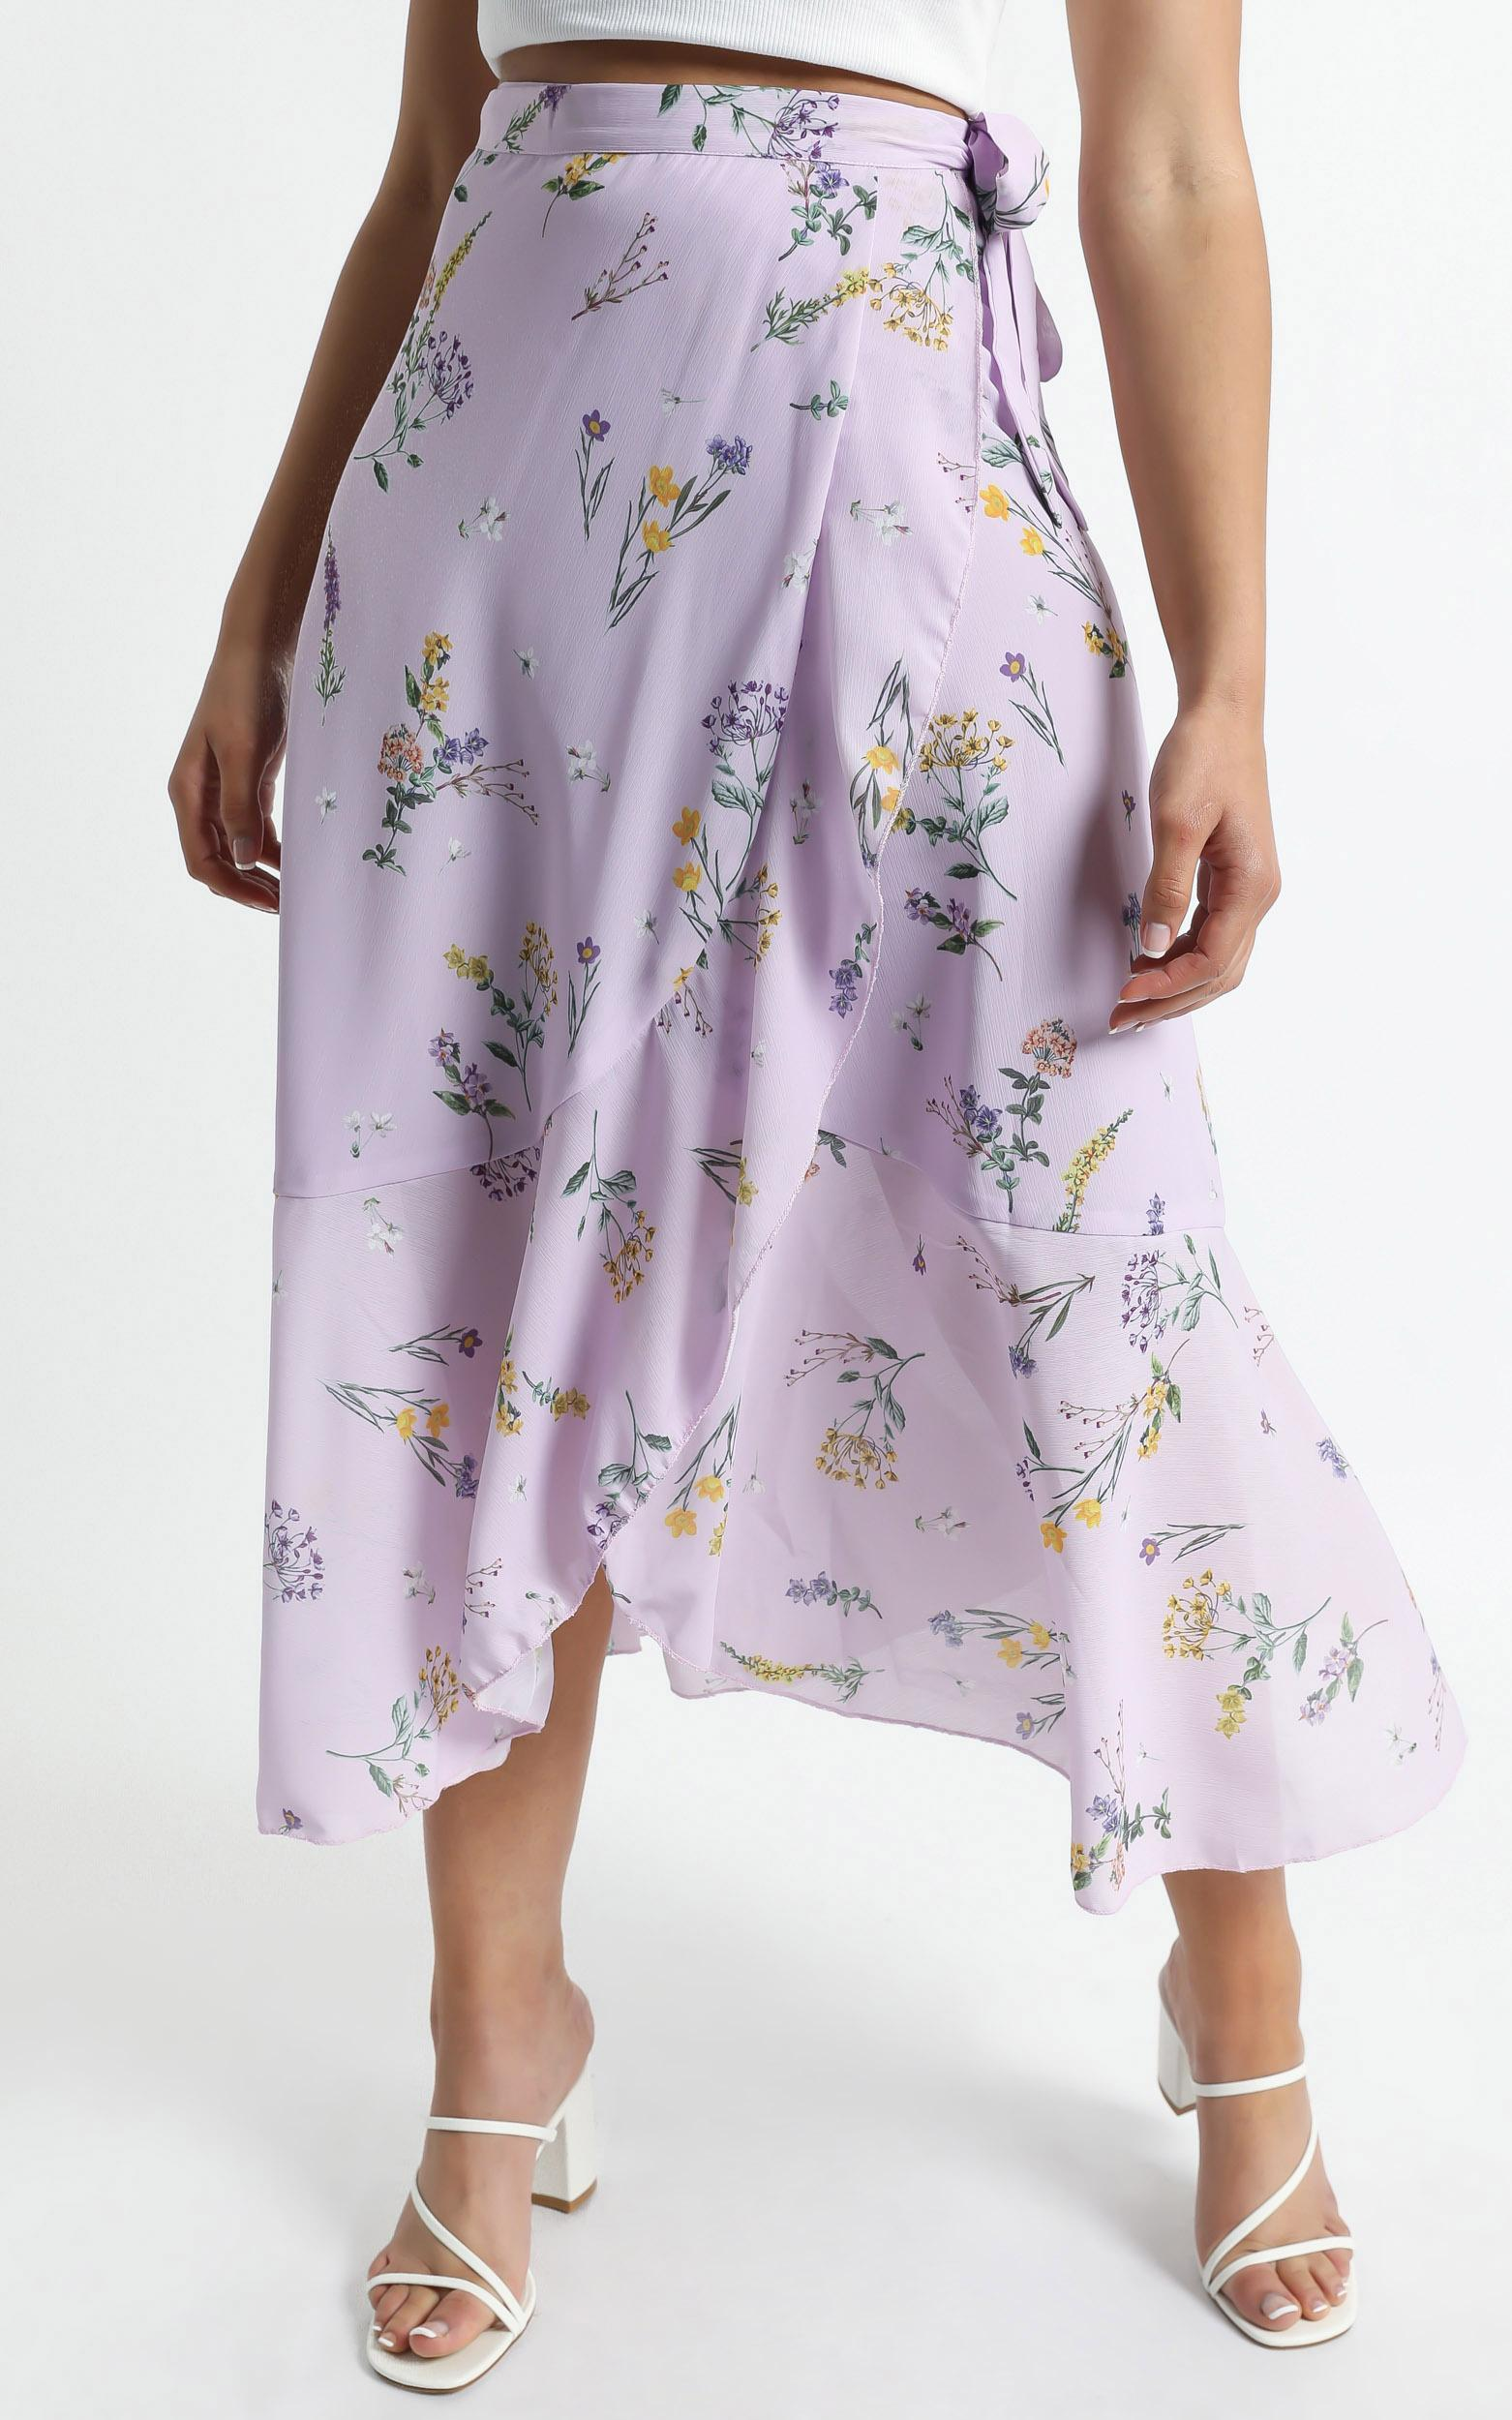 Add To The Mix Skirt in Lavender Botanical Floral - 6 (XS), Purple, hi-res image number null